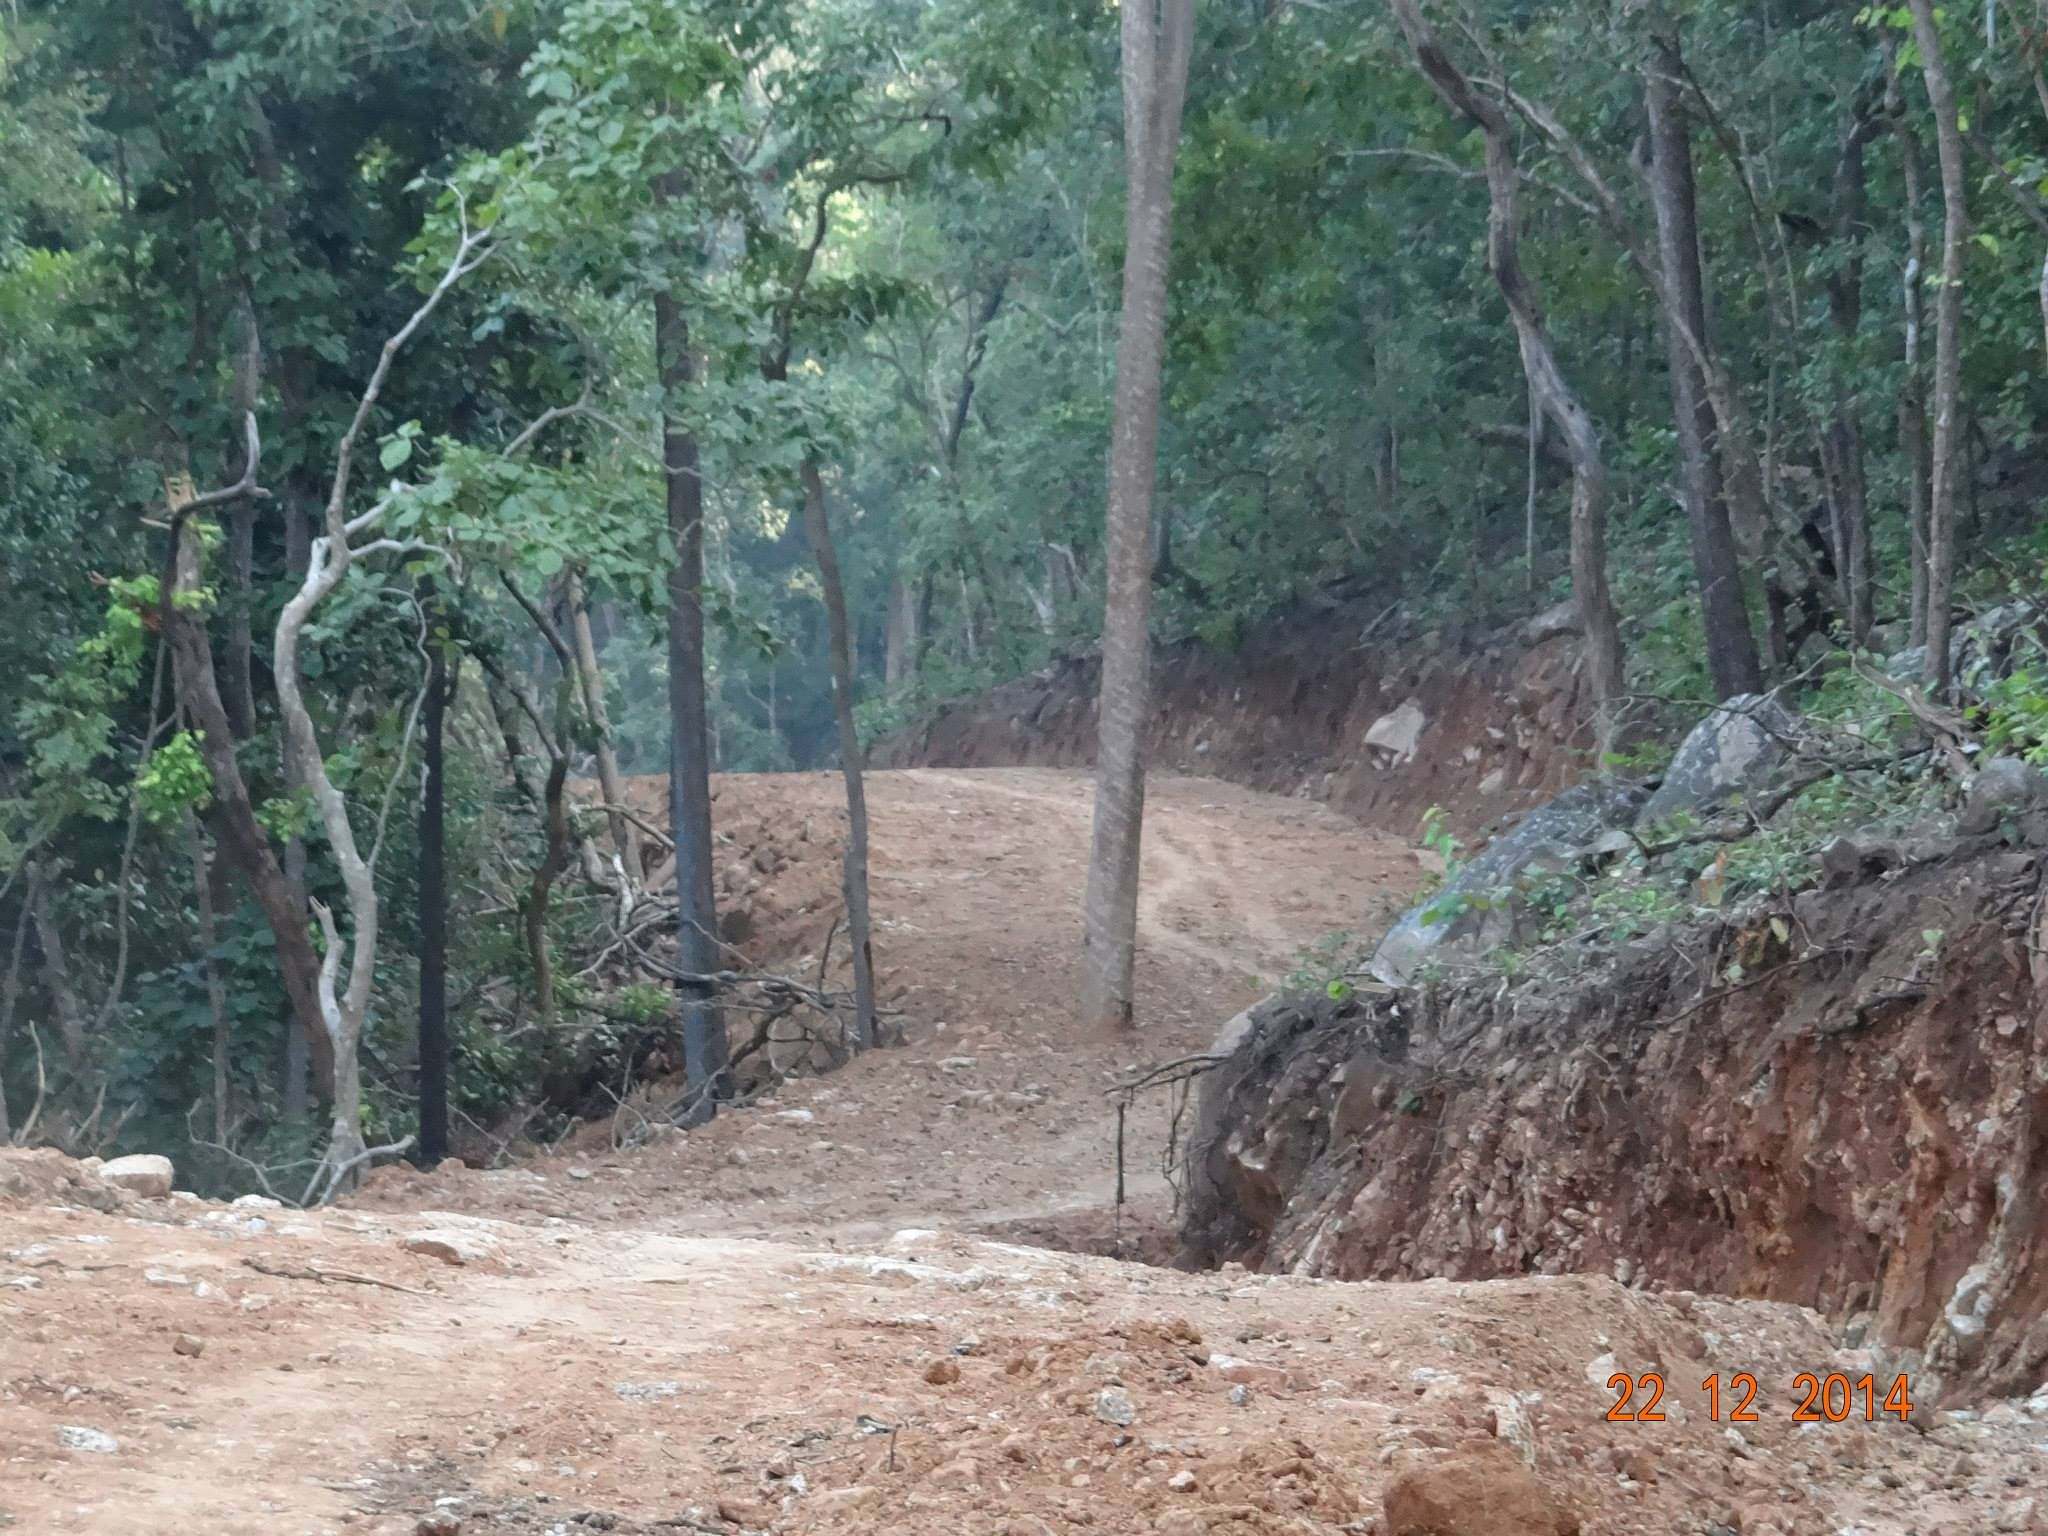 The road was cut through a ghat to the Garadama gram panchayat.